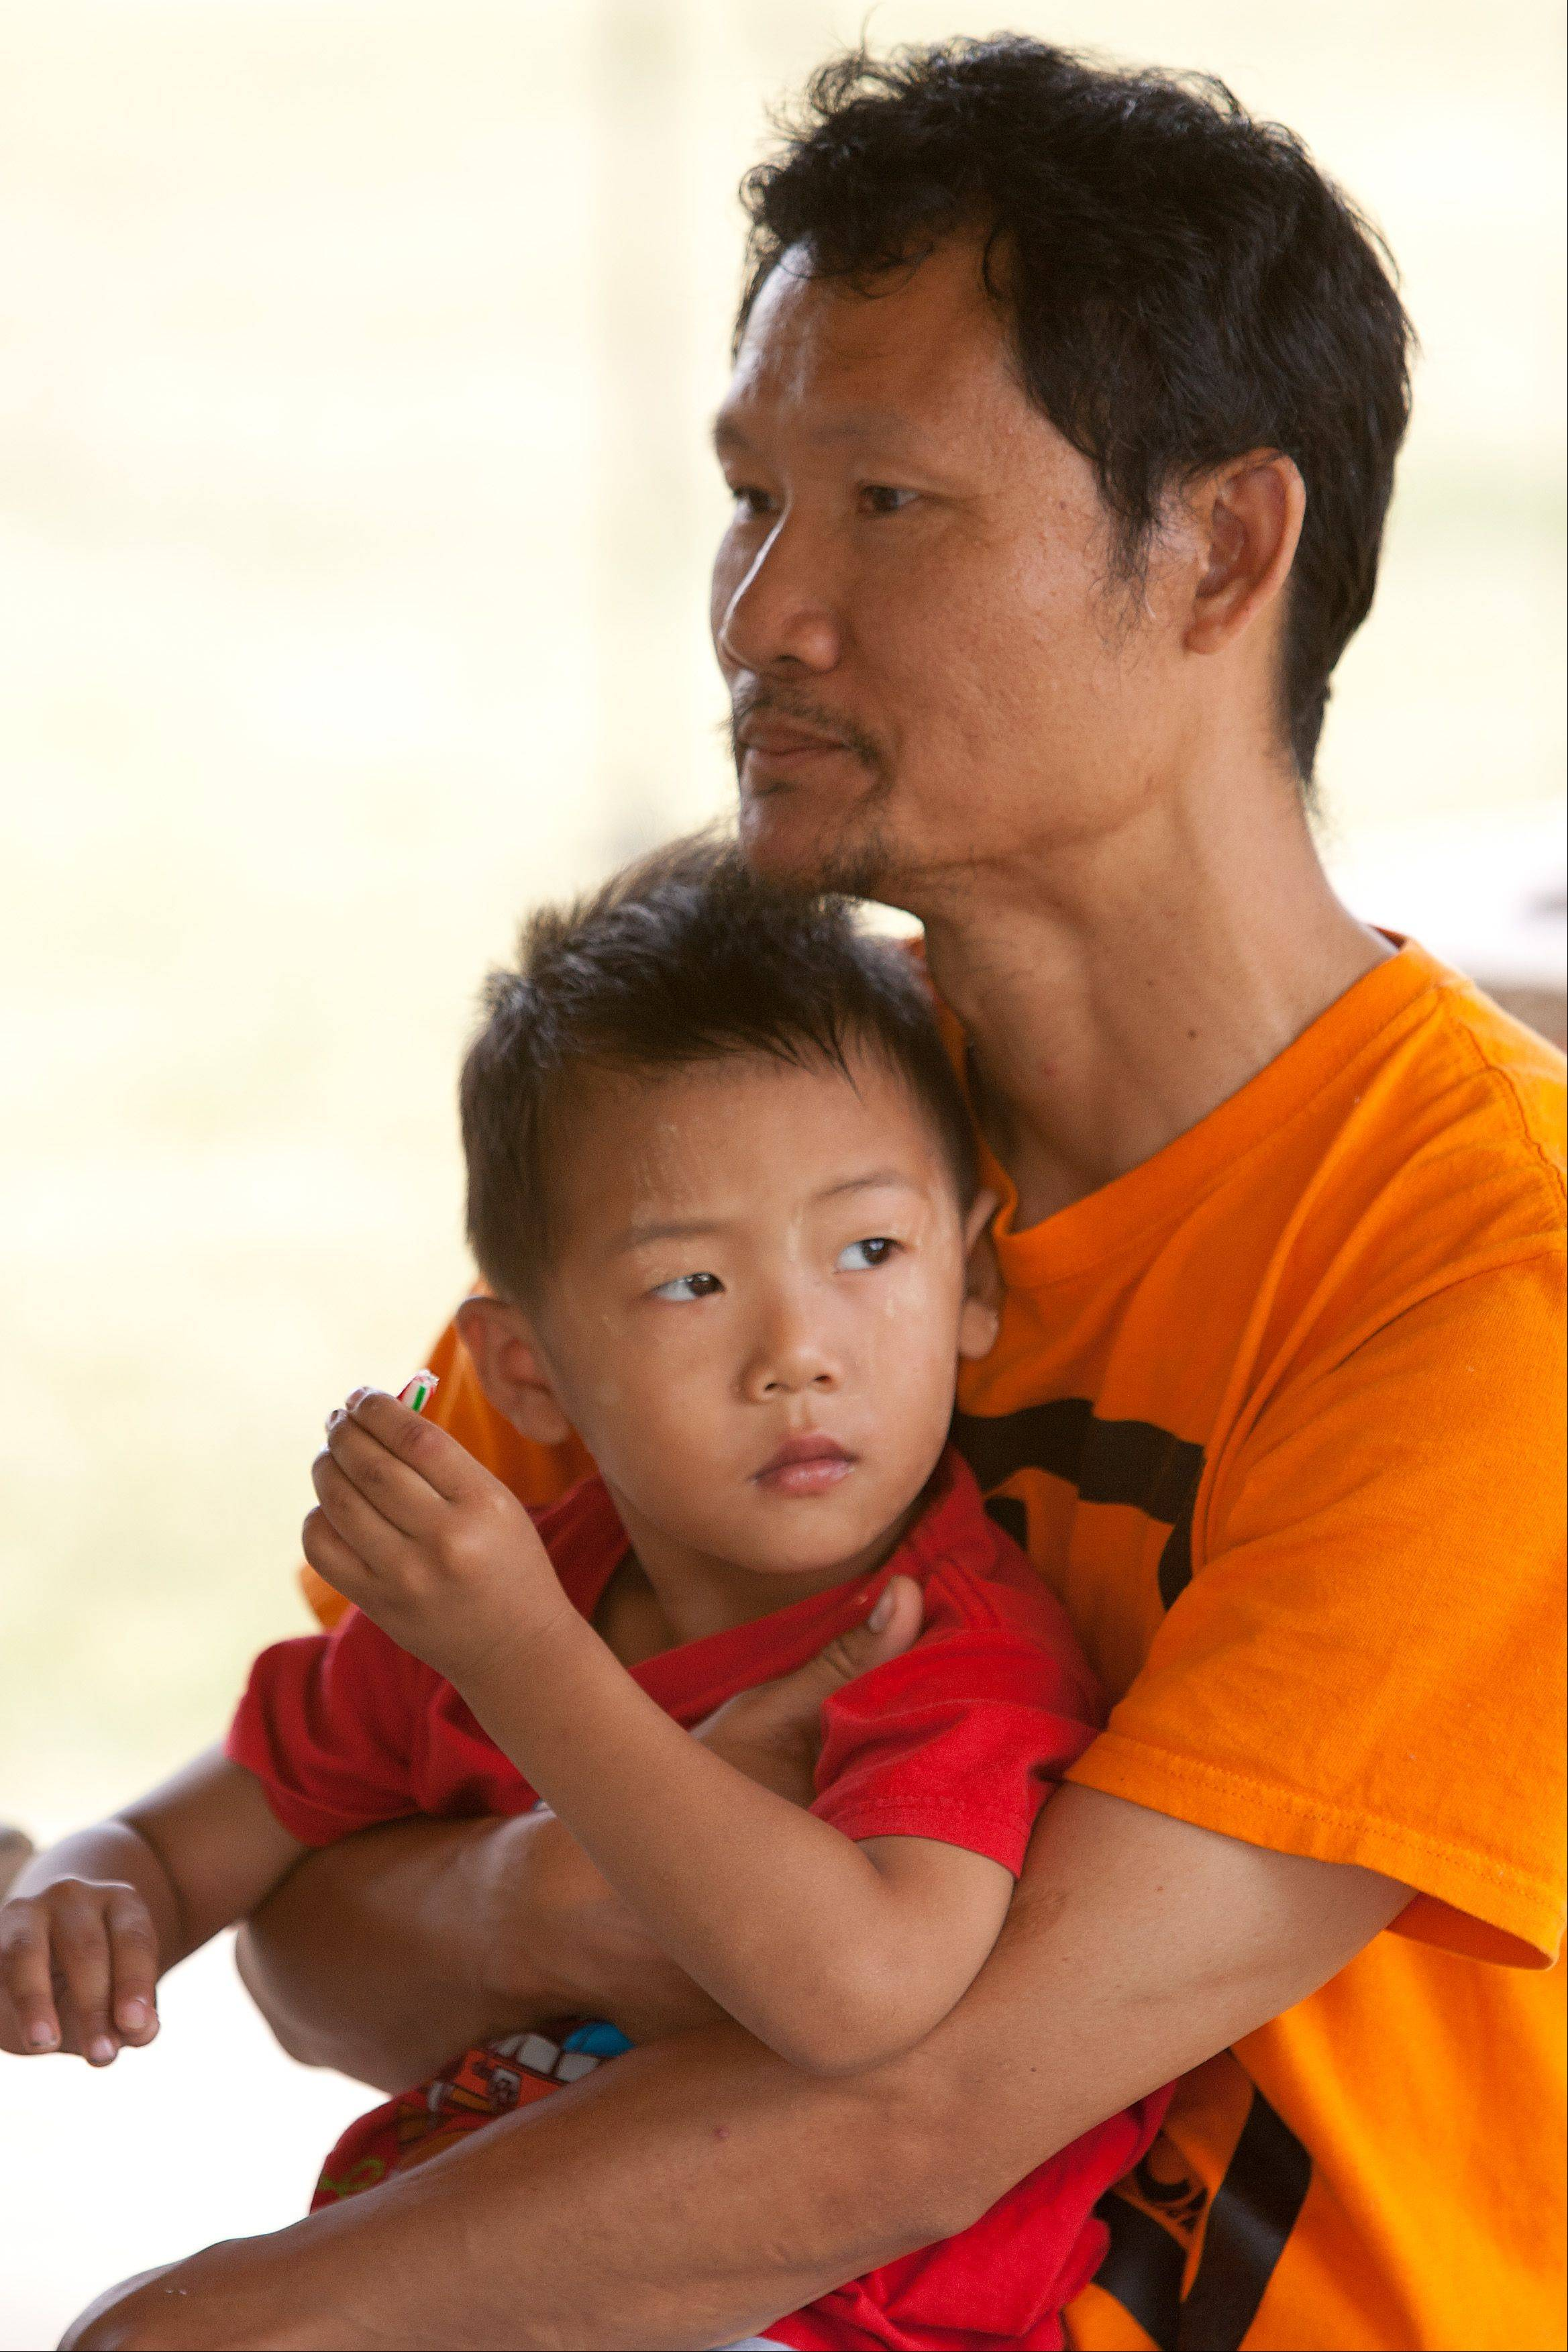 Soe Rah, a Wheaton resident and leader of the area's Karen Burmese community, holds his son, Saw Soe, 3, Saturday during a picnic hosted by World Relief DuPage/Aurora and Exodus World Service.